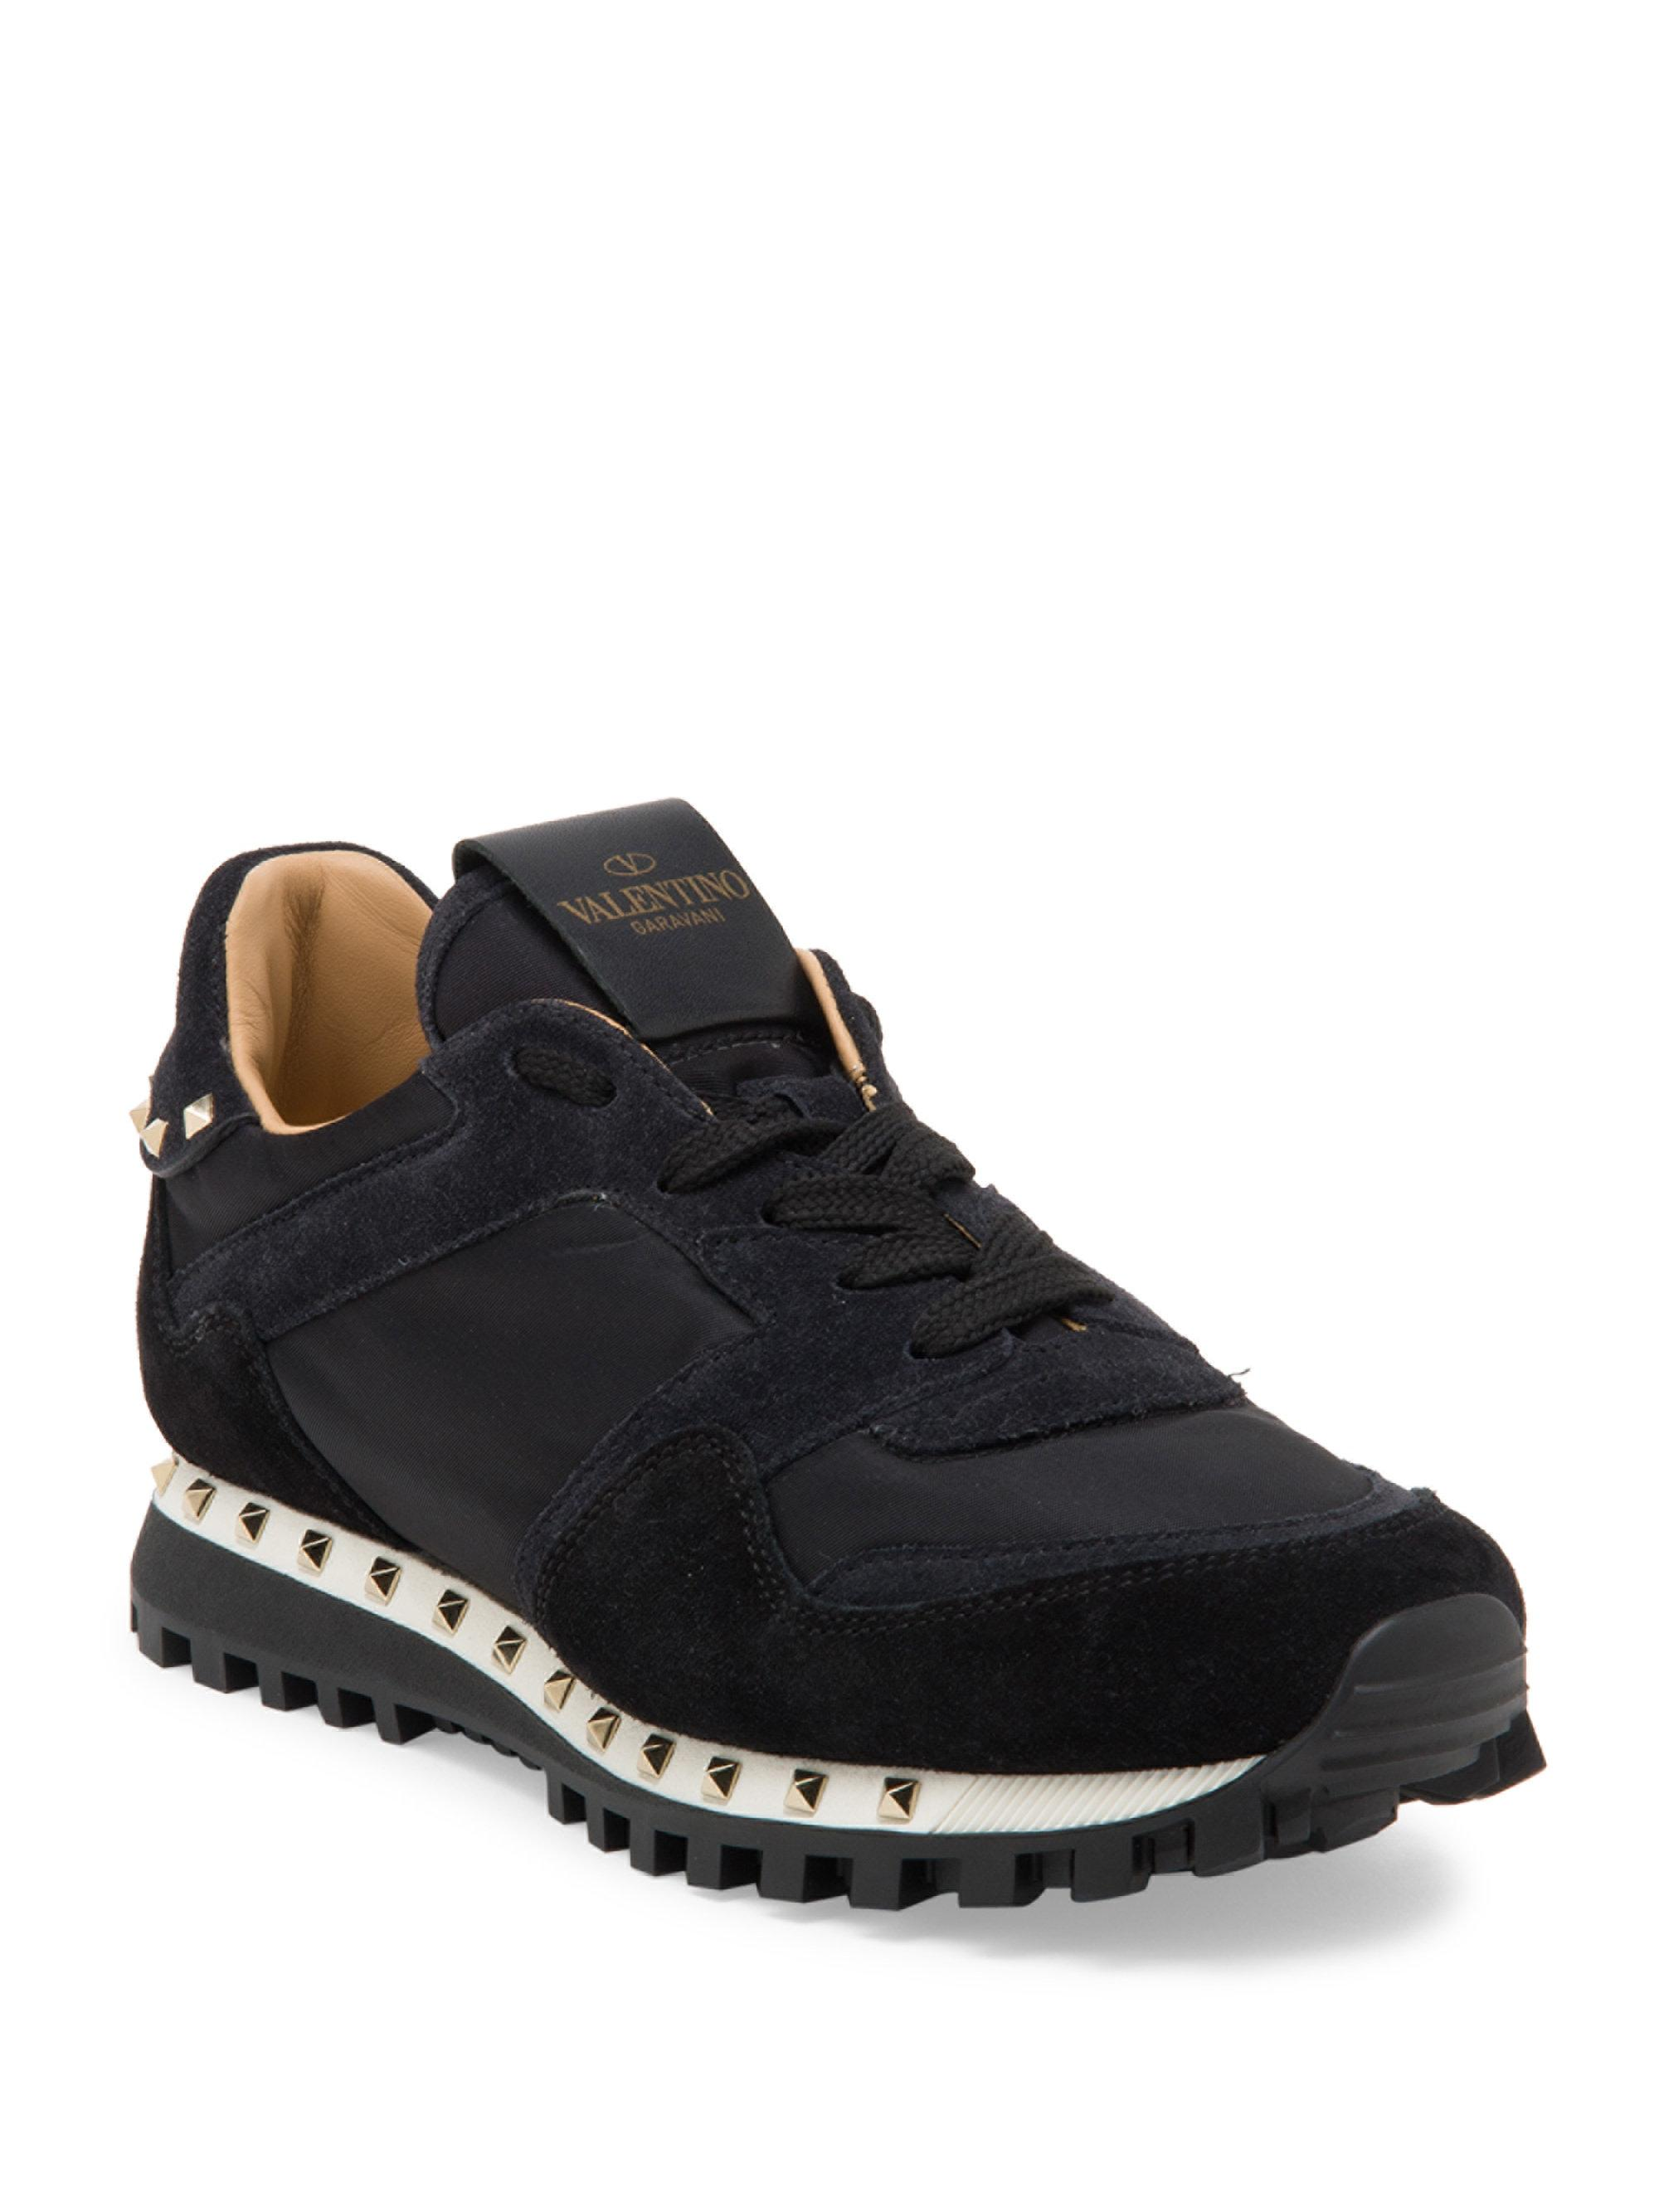 Valentino Women S Women S Studded Suede Sneakers Black